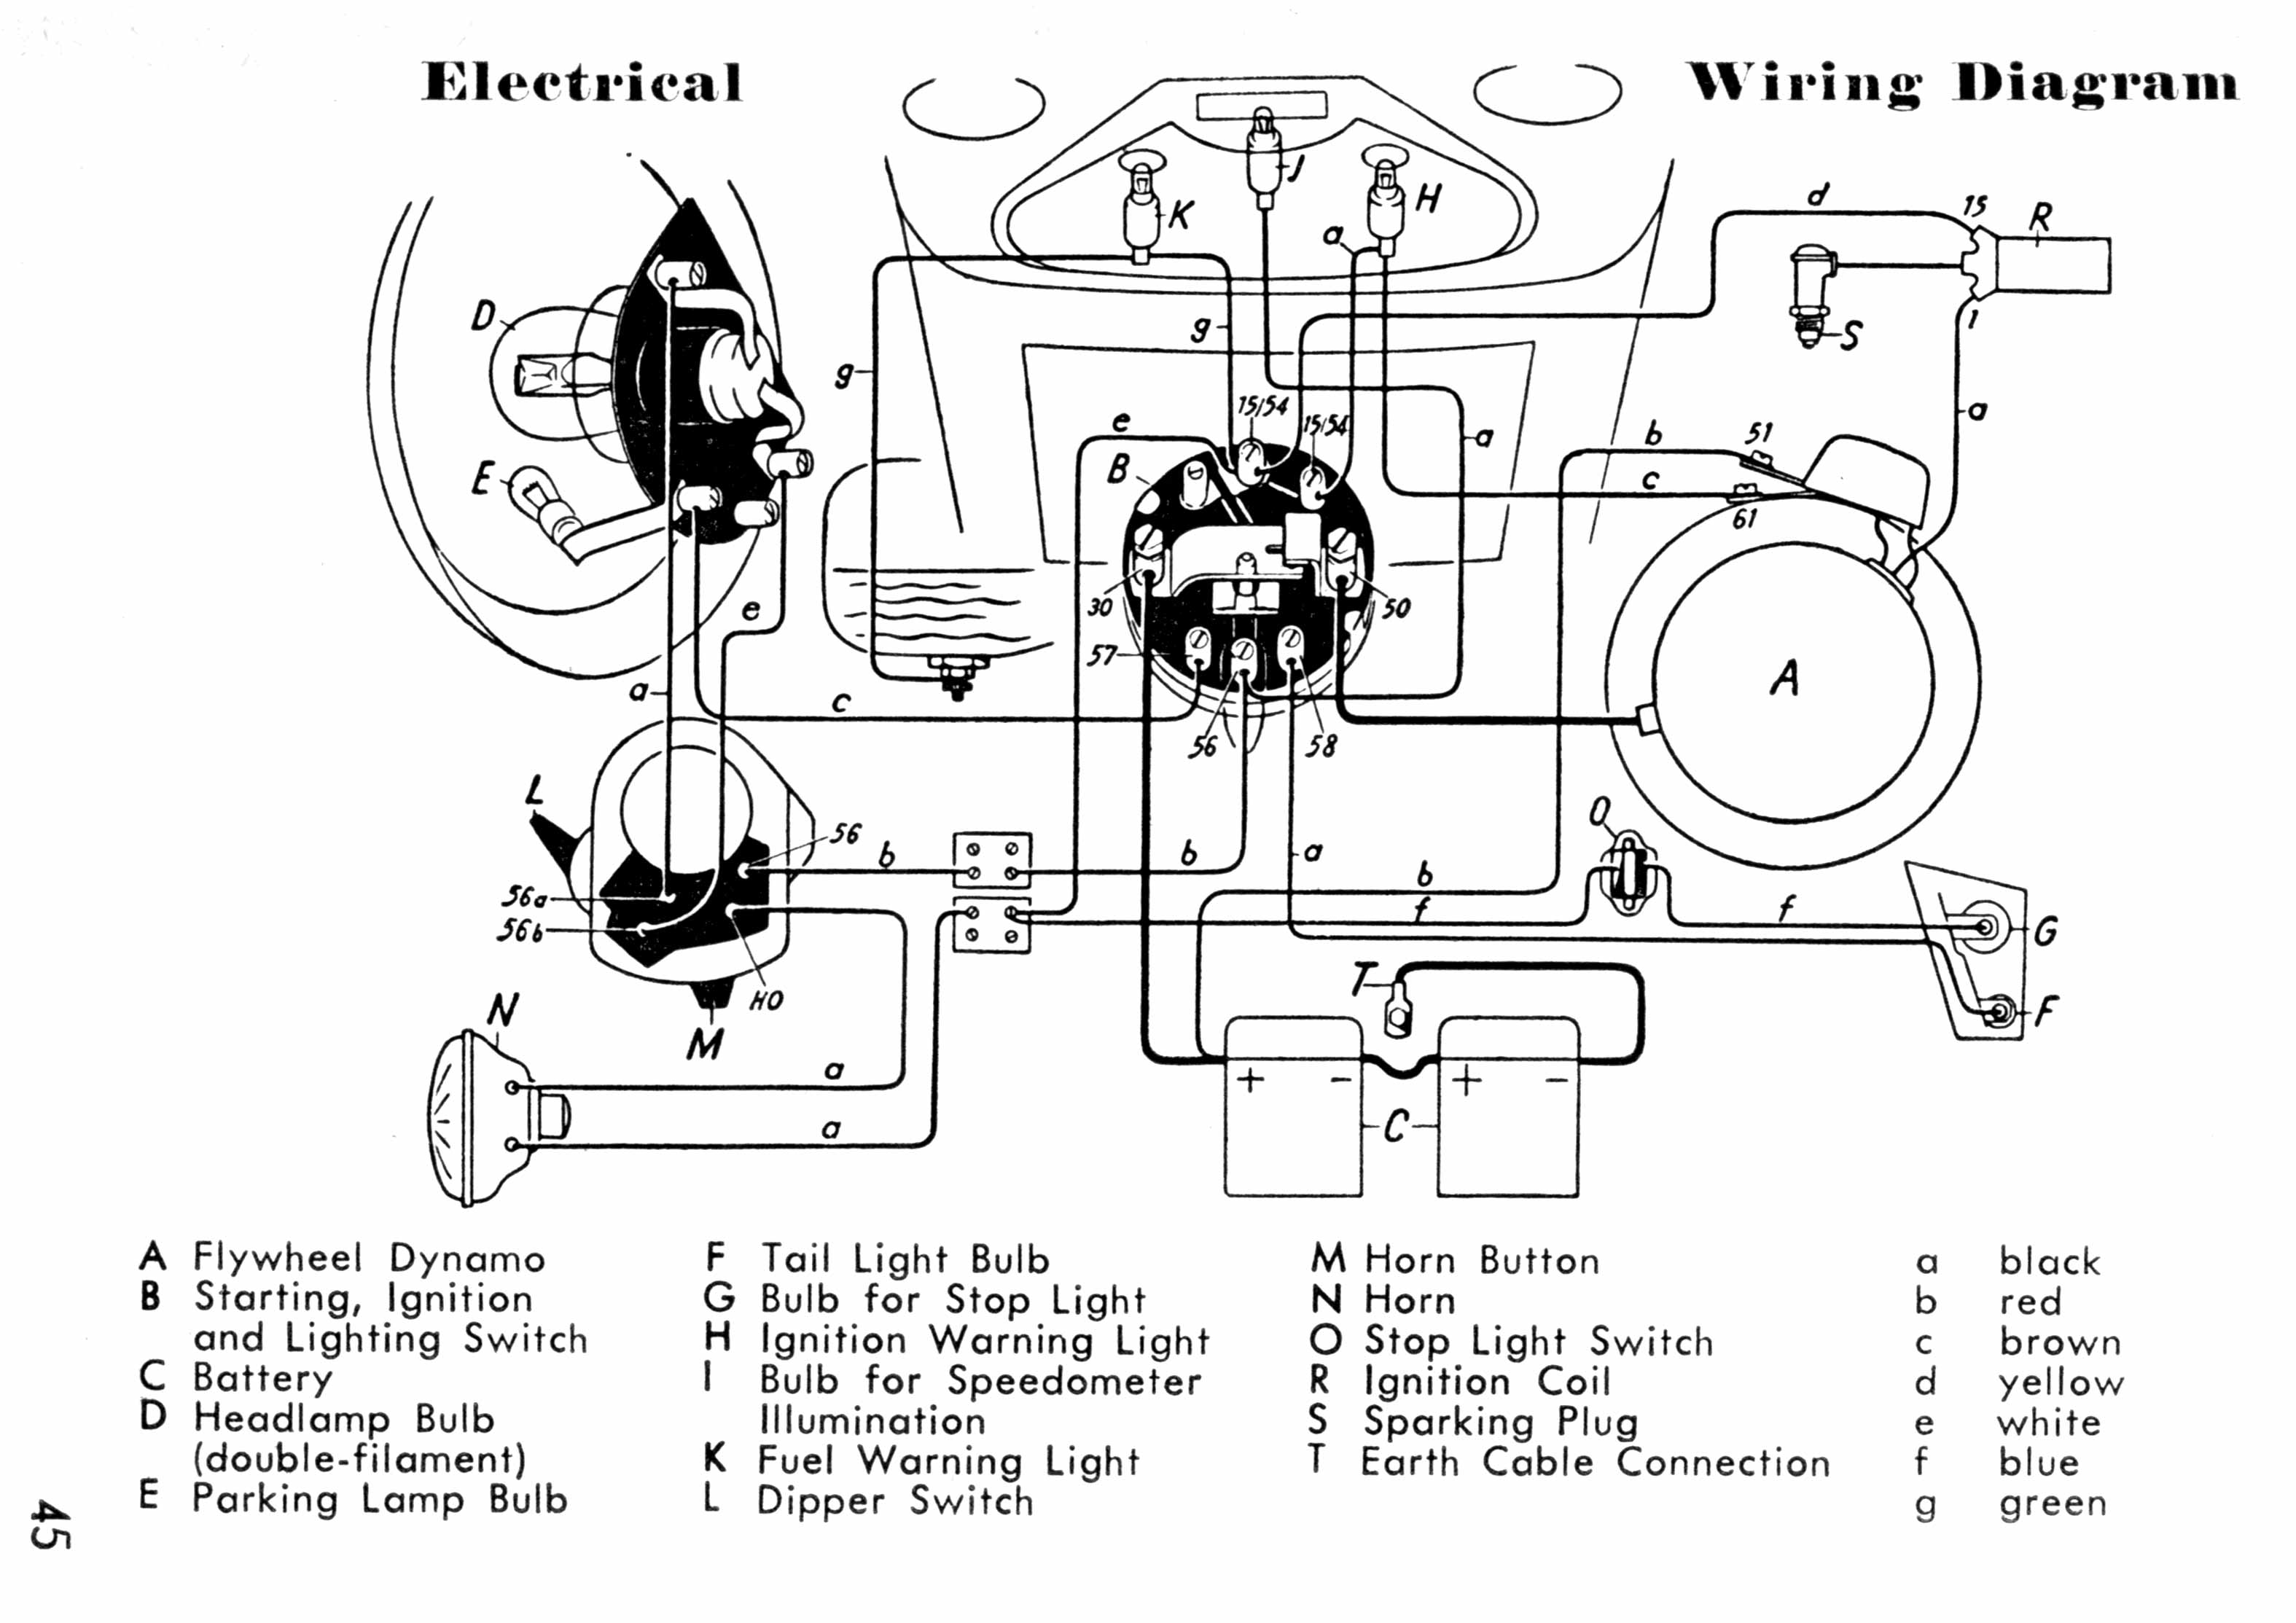 wiring diagram peugeot j5 wiring wiring diagrams nsu wiring diagram description nsu wiring diagram wiring diagram peugeot j peugeot service box sedre 112013 full instruction16 wiring